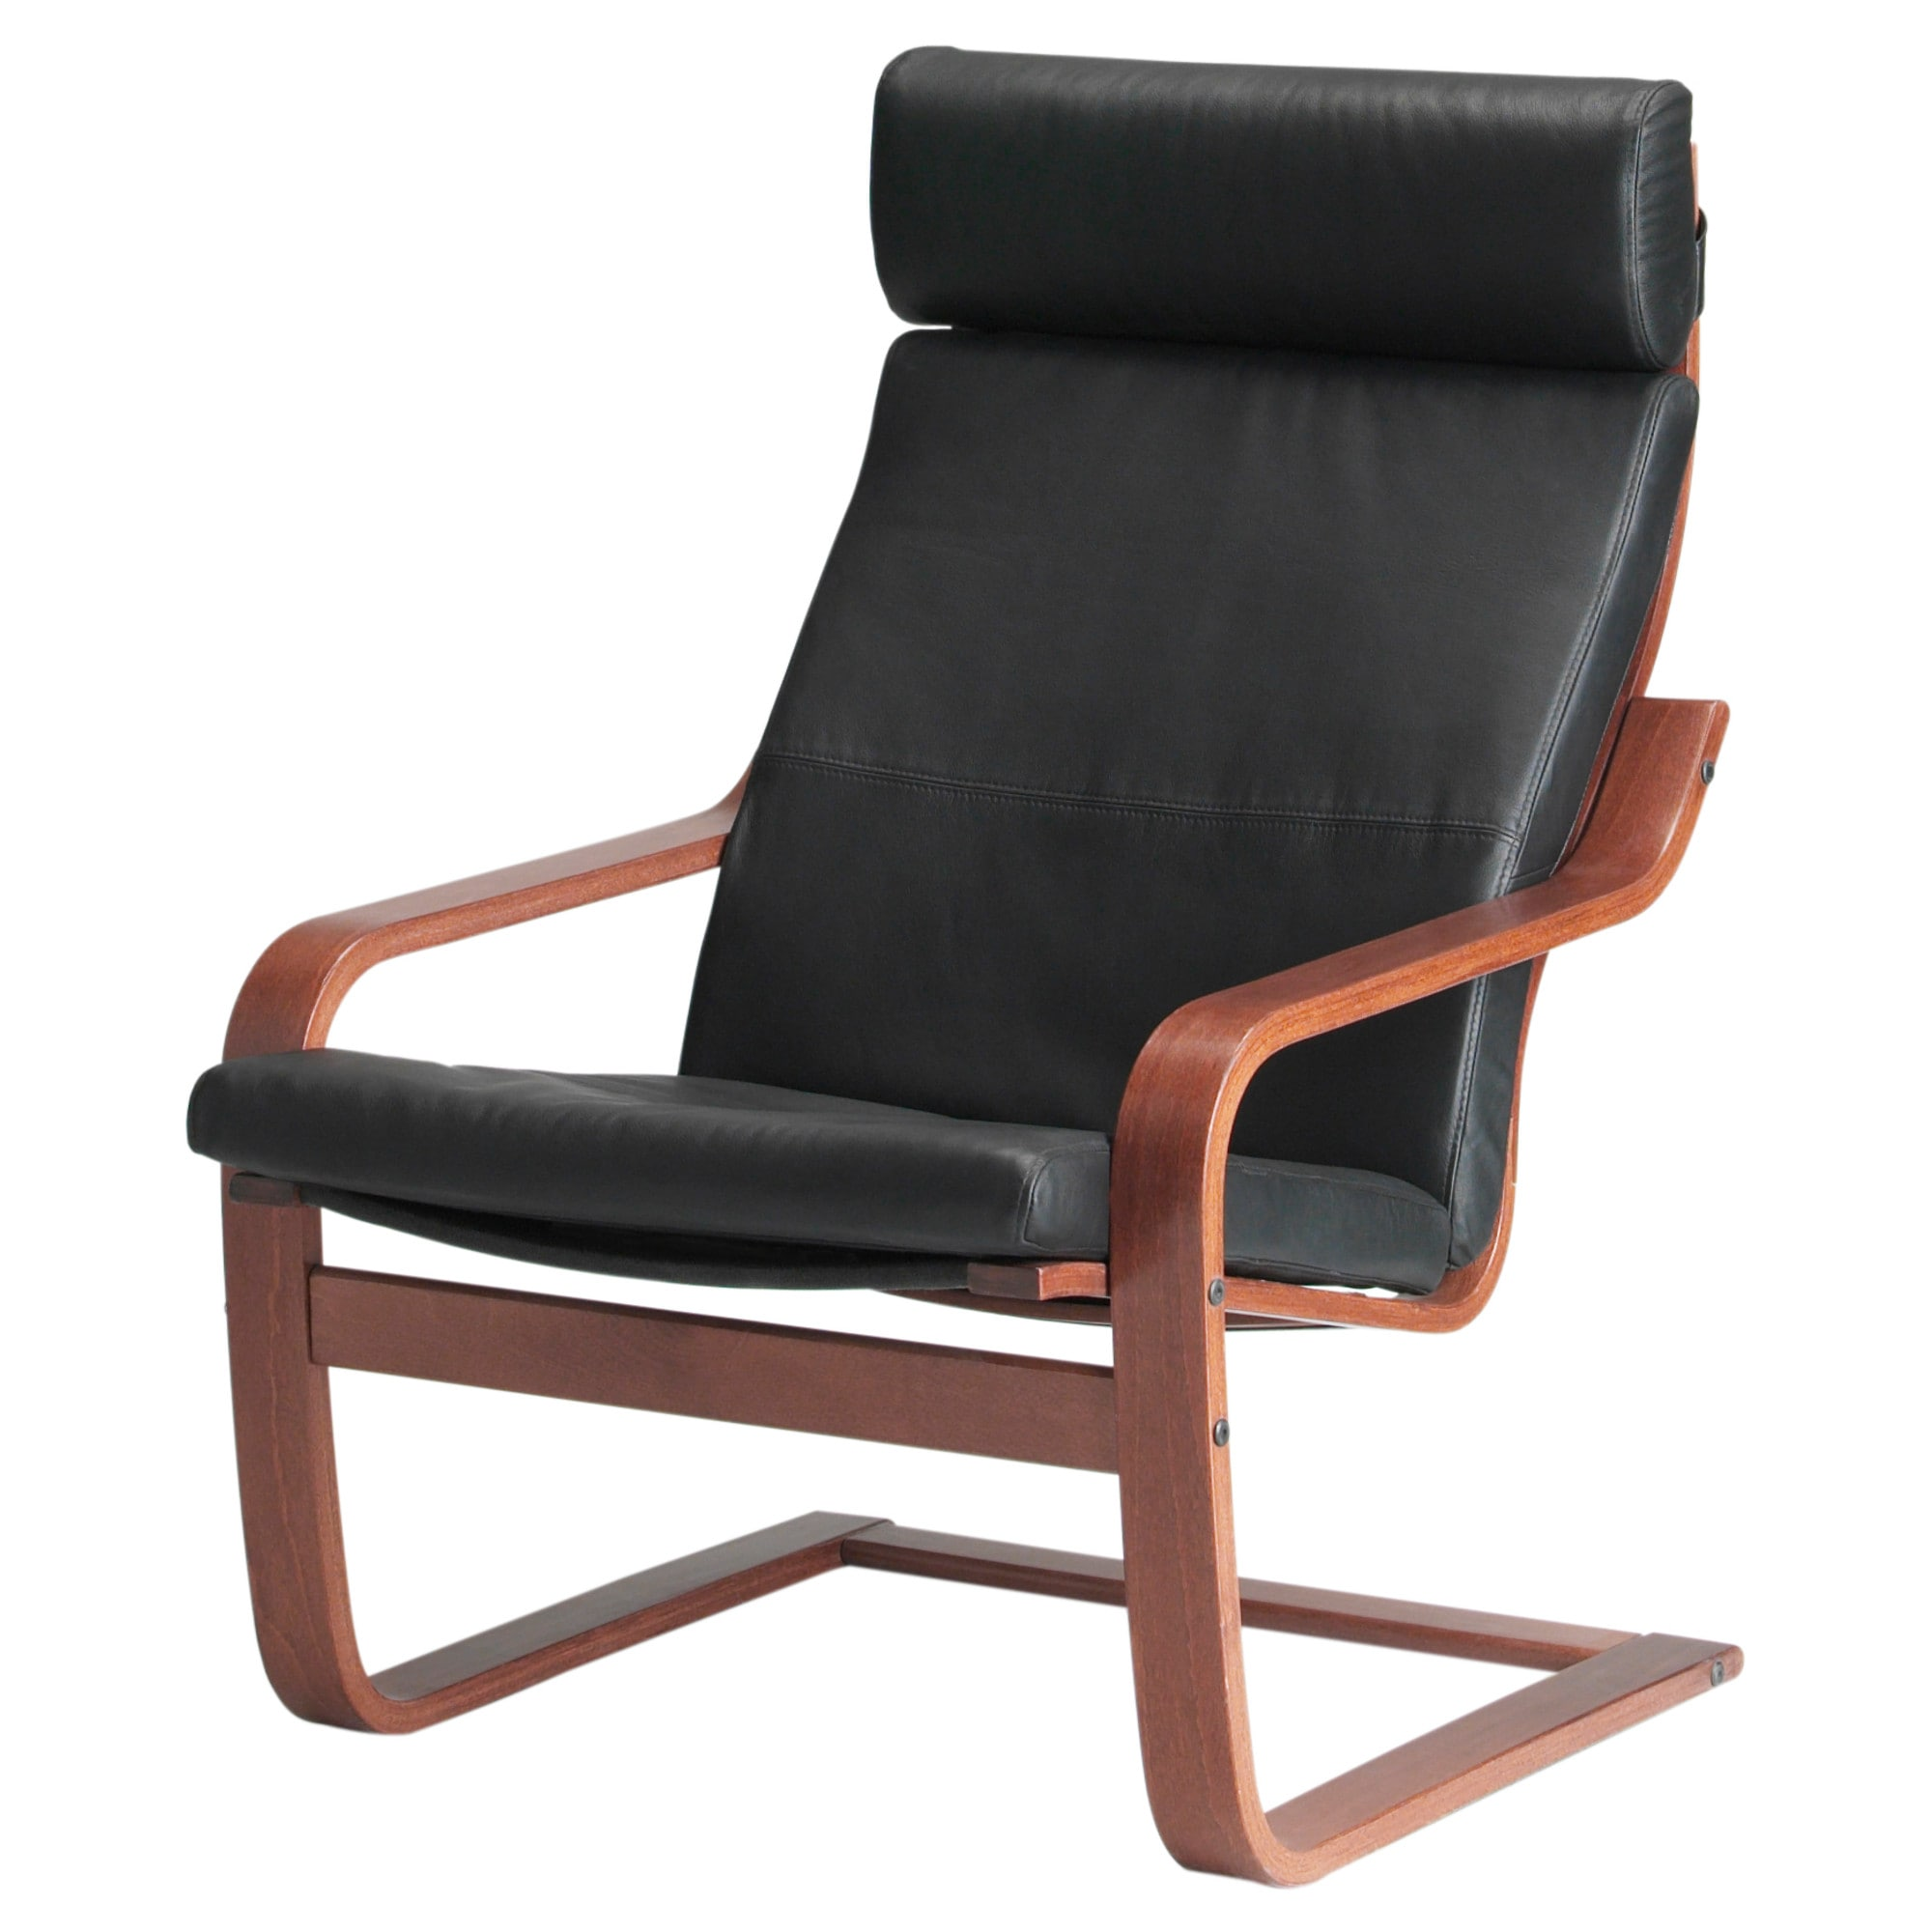 Poang chair living room - Poang Chair Living Room 45